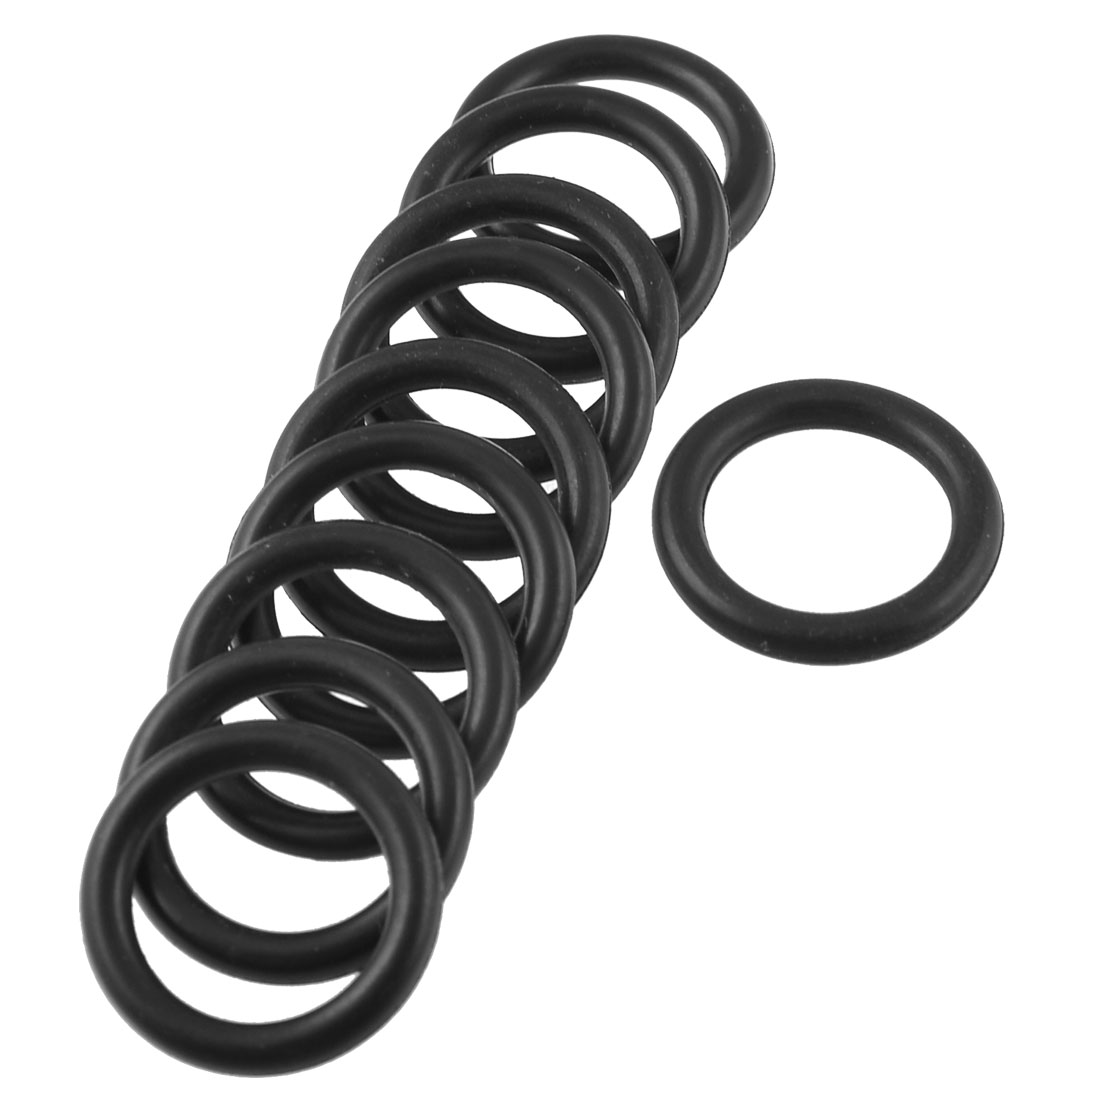 10-Pcs-Black-Rubber-Oil-Seal-O-Ring-Sealing-Gasket-Washers-21mm-x-3mm